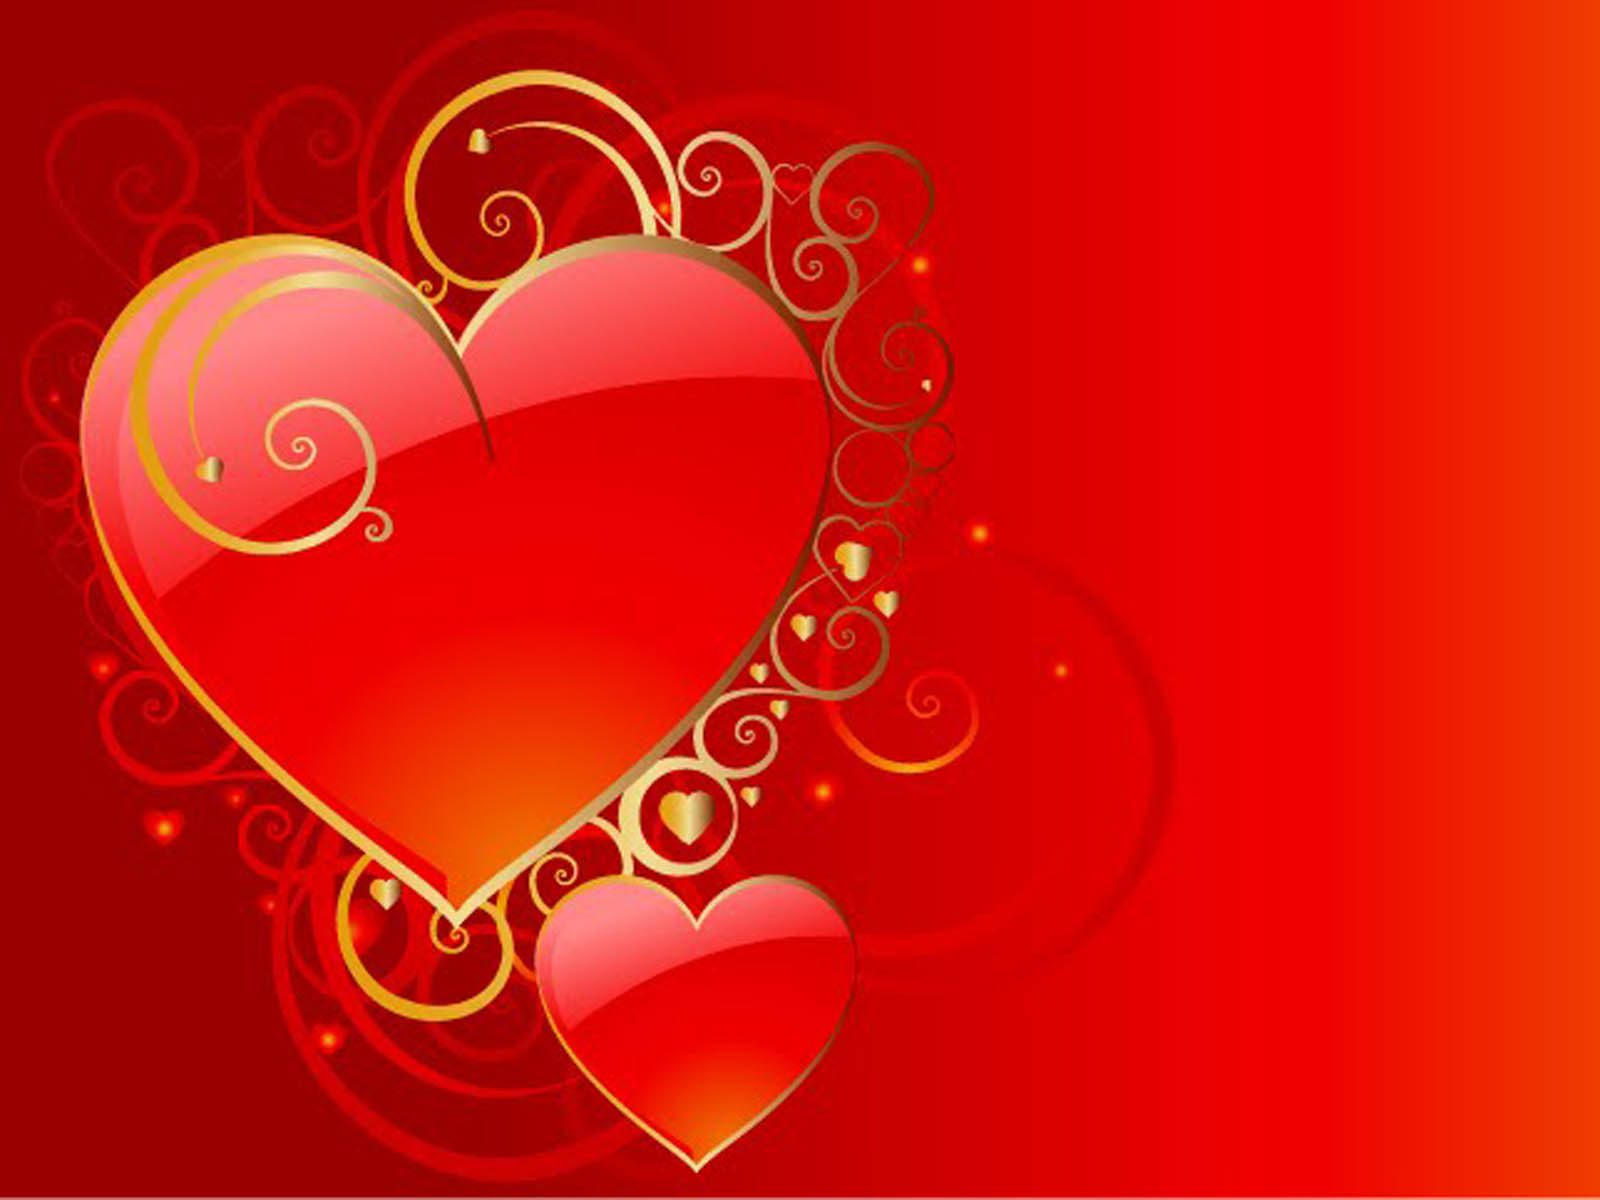 heart love red background - photo #28